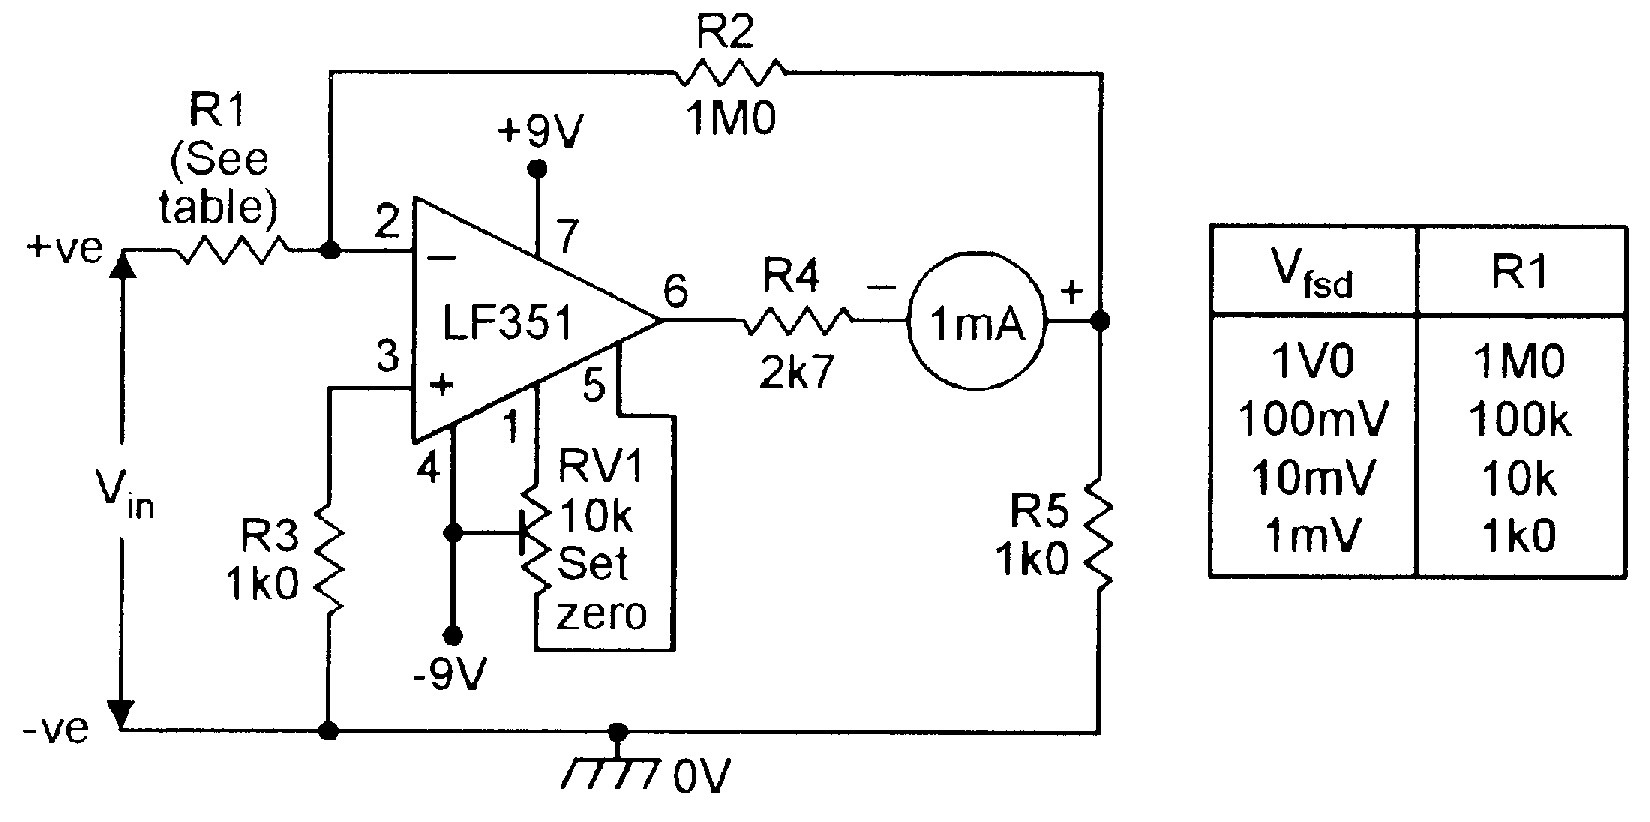 Wideband Voltage Follower Circuit Diagram Basiccircuit Precision Ac Peak Detector Seekic Op Amp Cookbook Part 4 Nuts Volts Magazine Rh Nutsvolts Com